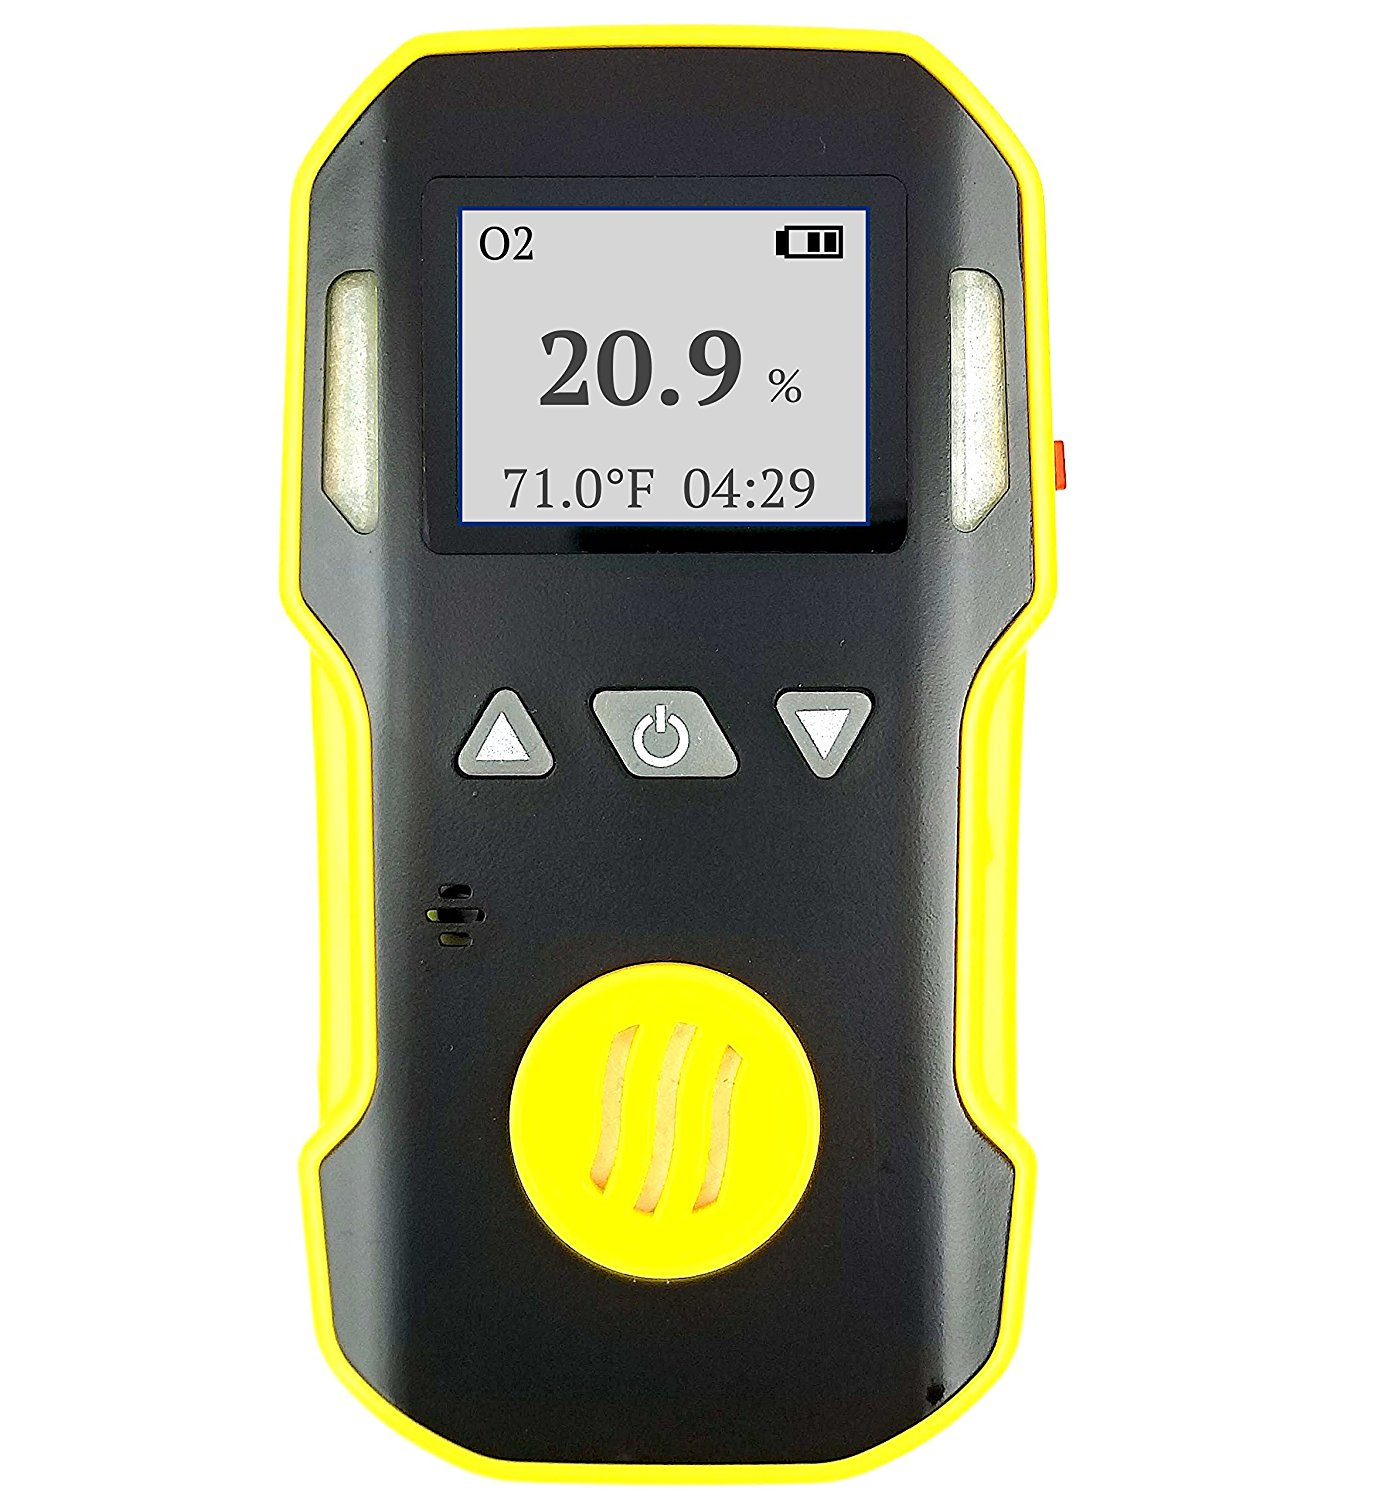 Oxygen O2 Detector & Analyzer by FORENSICS & BOSEAN   Anti-slip Grip   Water, Dust & Explosion Proof   Li-Ion Battery 2000mAh   Adjustable Sound, Light and Vibration Alarms   0-30% O2  